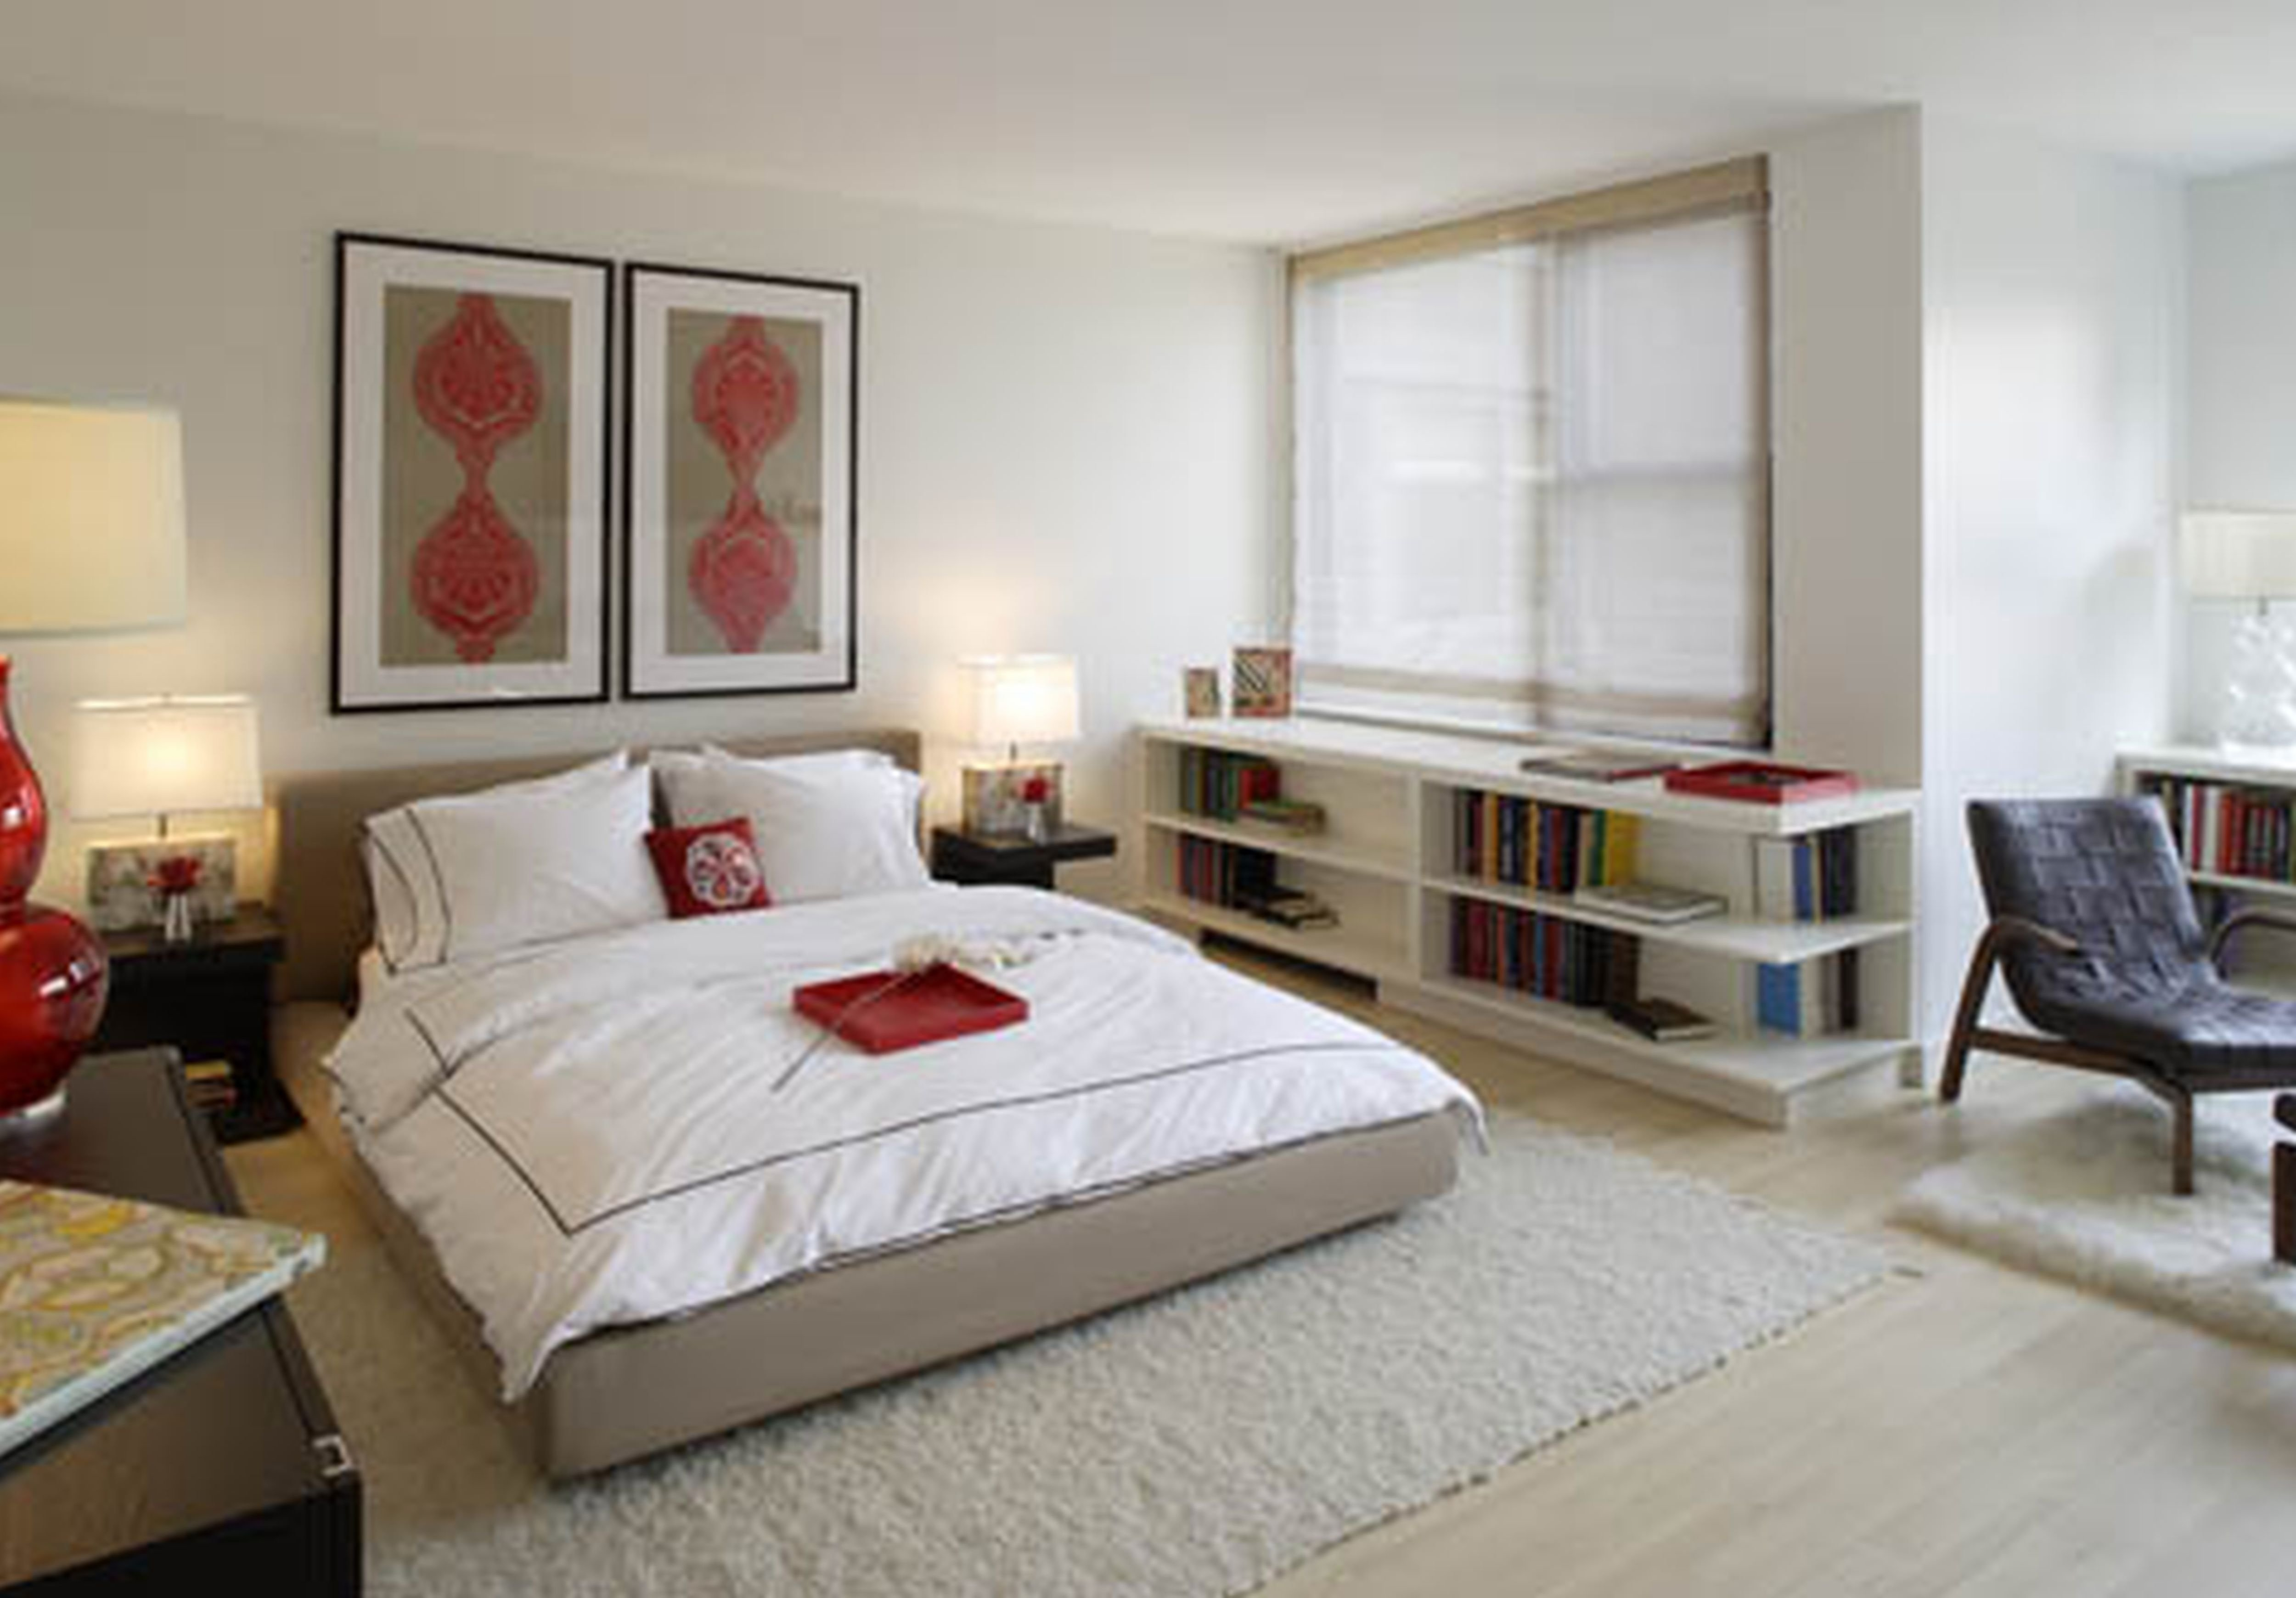 10 Cute Apartment Bedroom Decorating Ideas On A Budget best budget apartment decorating ideas awesome home on a house